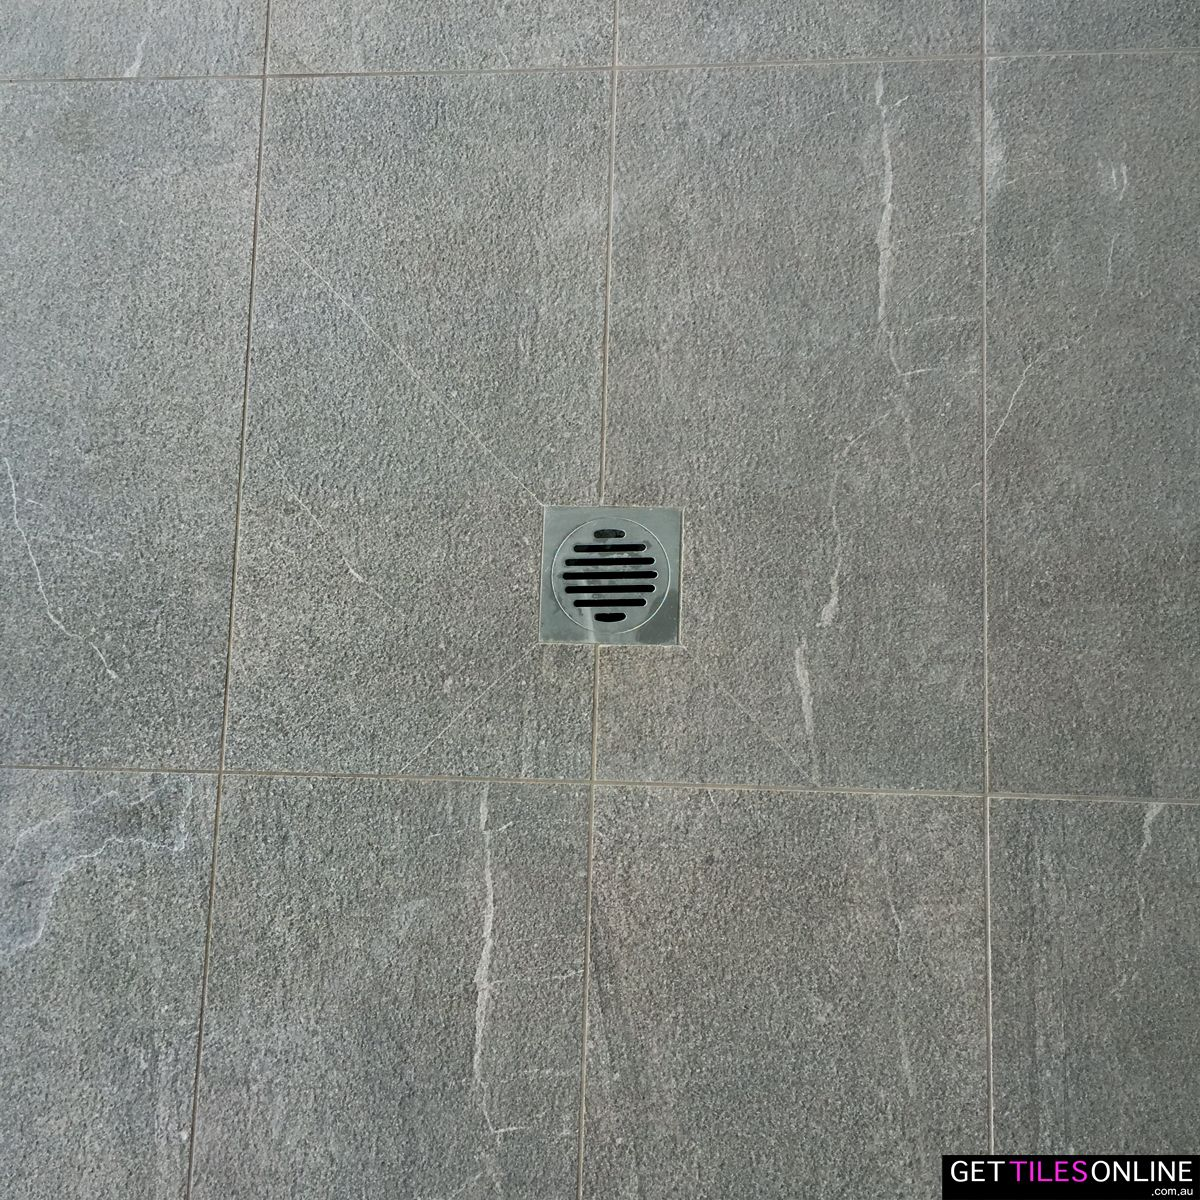 Buy cheap outdoor tile nature vein charcoal 300x600 get tiles buy cheap outdoor tile nature vein charcoal 300x600 get tiles online dailygadgetfo Image collections